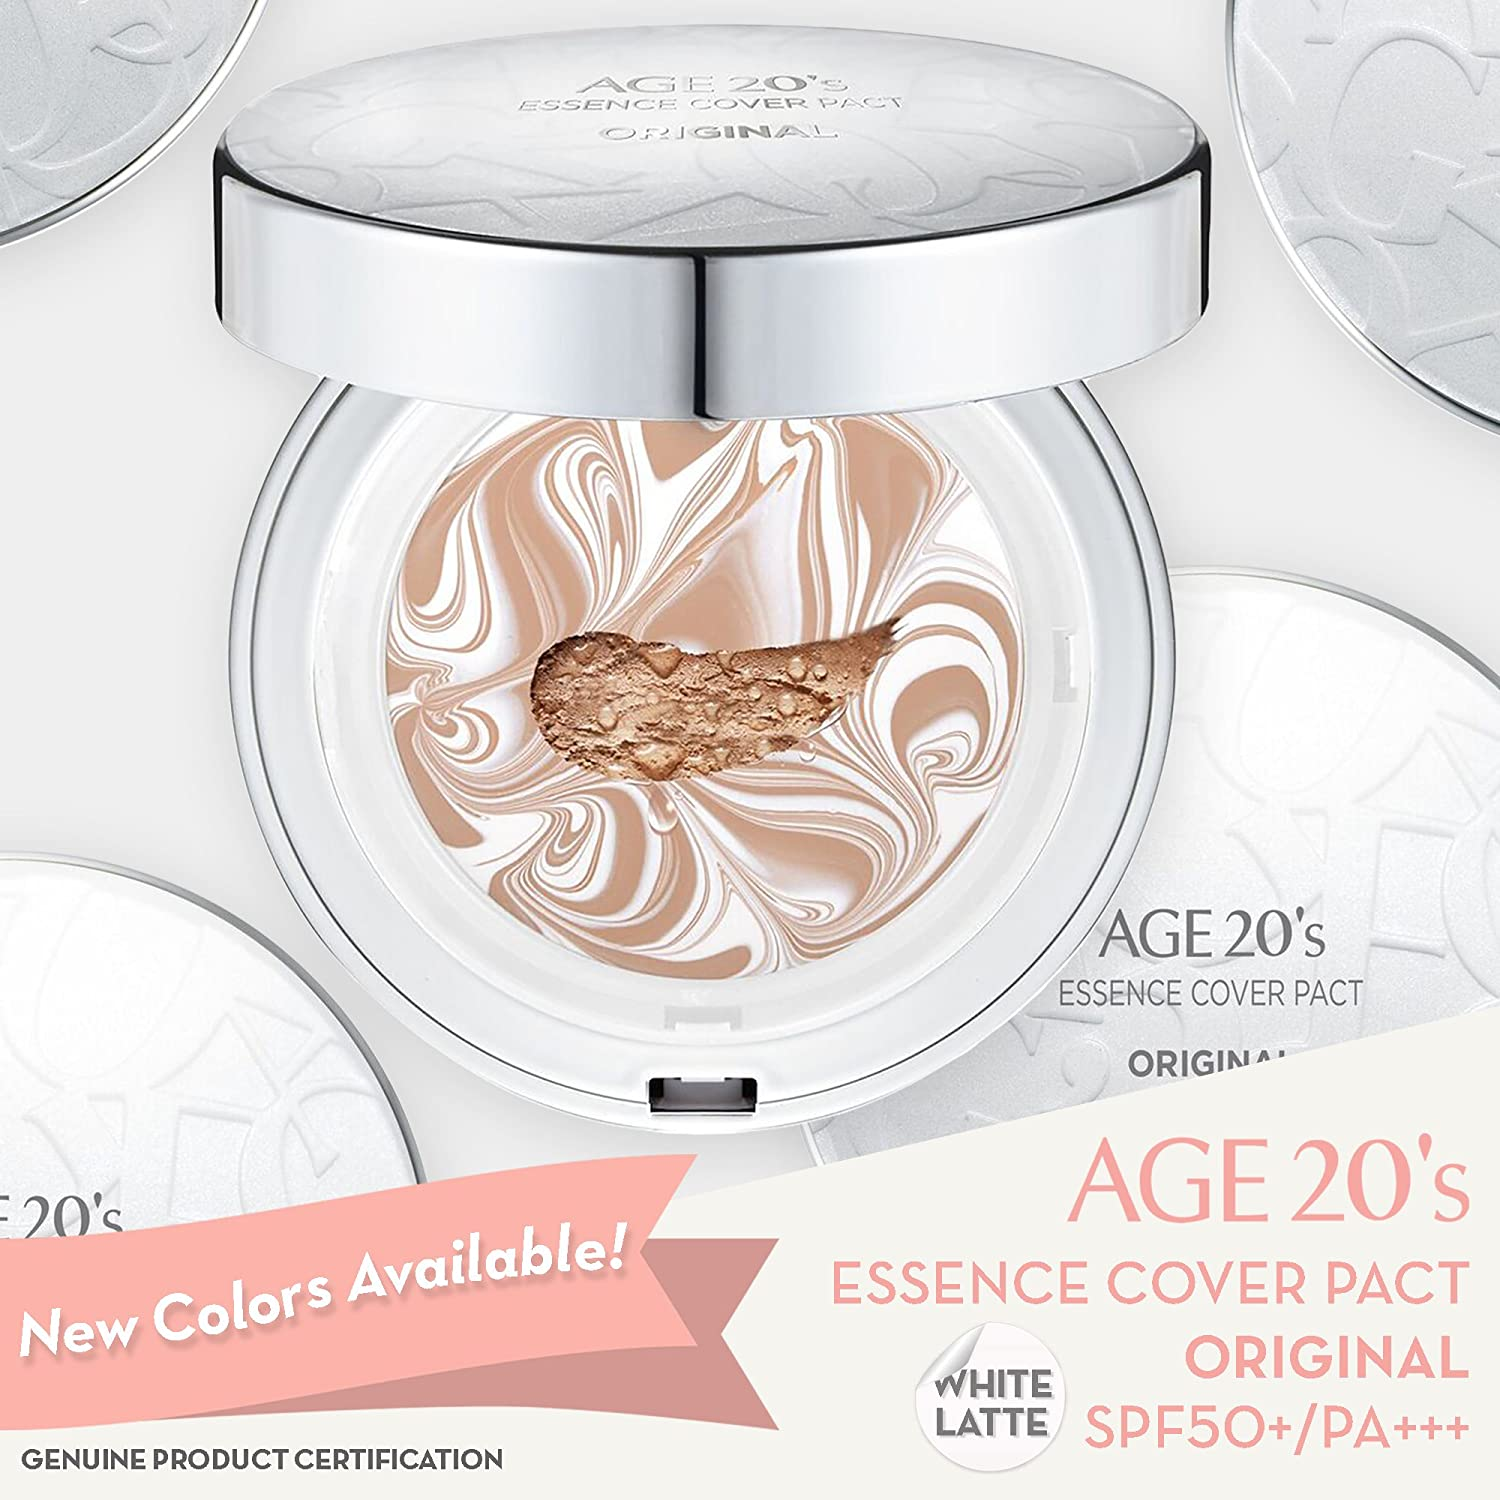 [ AGE TWENTIES ] Age 20's Compact Foundation Premium Makeup, 1 Extra Refill - White Latte Essence Cover Pact SPF50+ (Made in Korea) - Color No. 23 - White/Natural Beige Latte